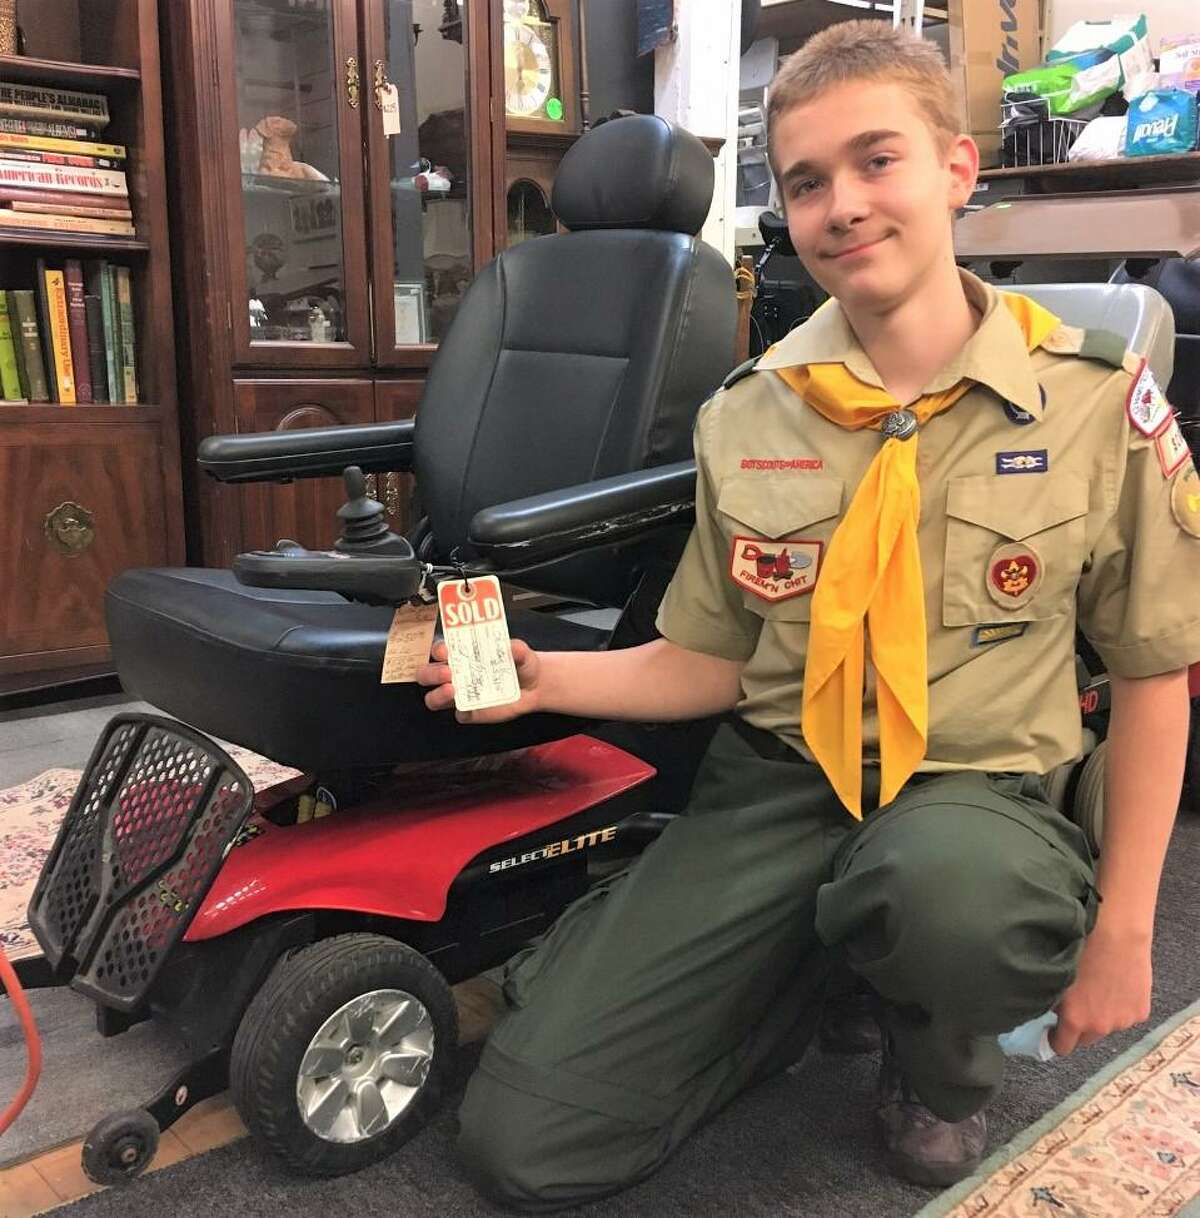 Middletown Eagle Scout candidate Michael Kline, 15, recently learned about a local woman, Adela Santiago, who needed a special wheelchair to get around, but couldn't afford one. He returned enough bottles and cans during a drive to purchase the $500 scooter for her - as a surprise.